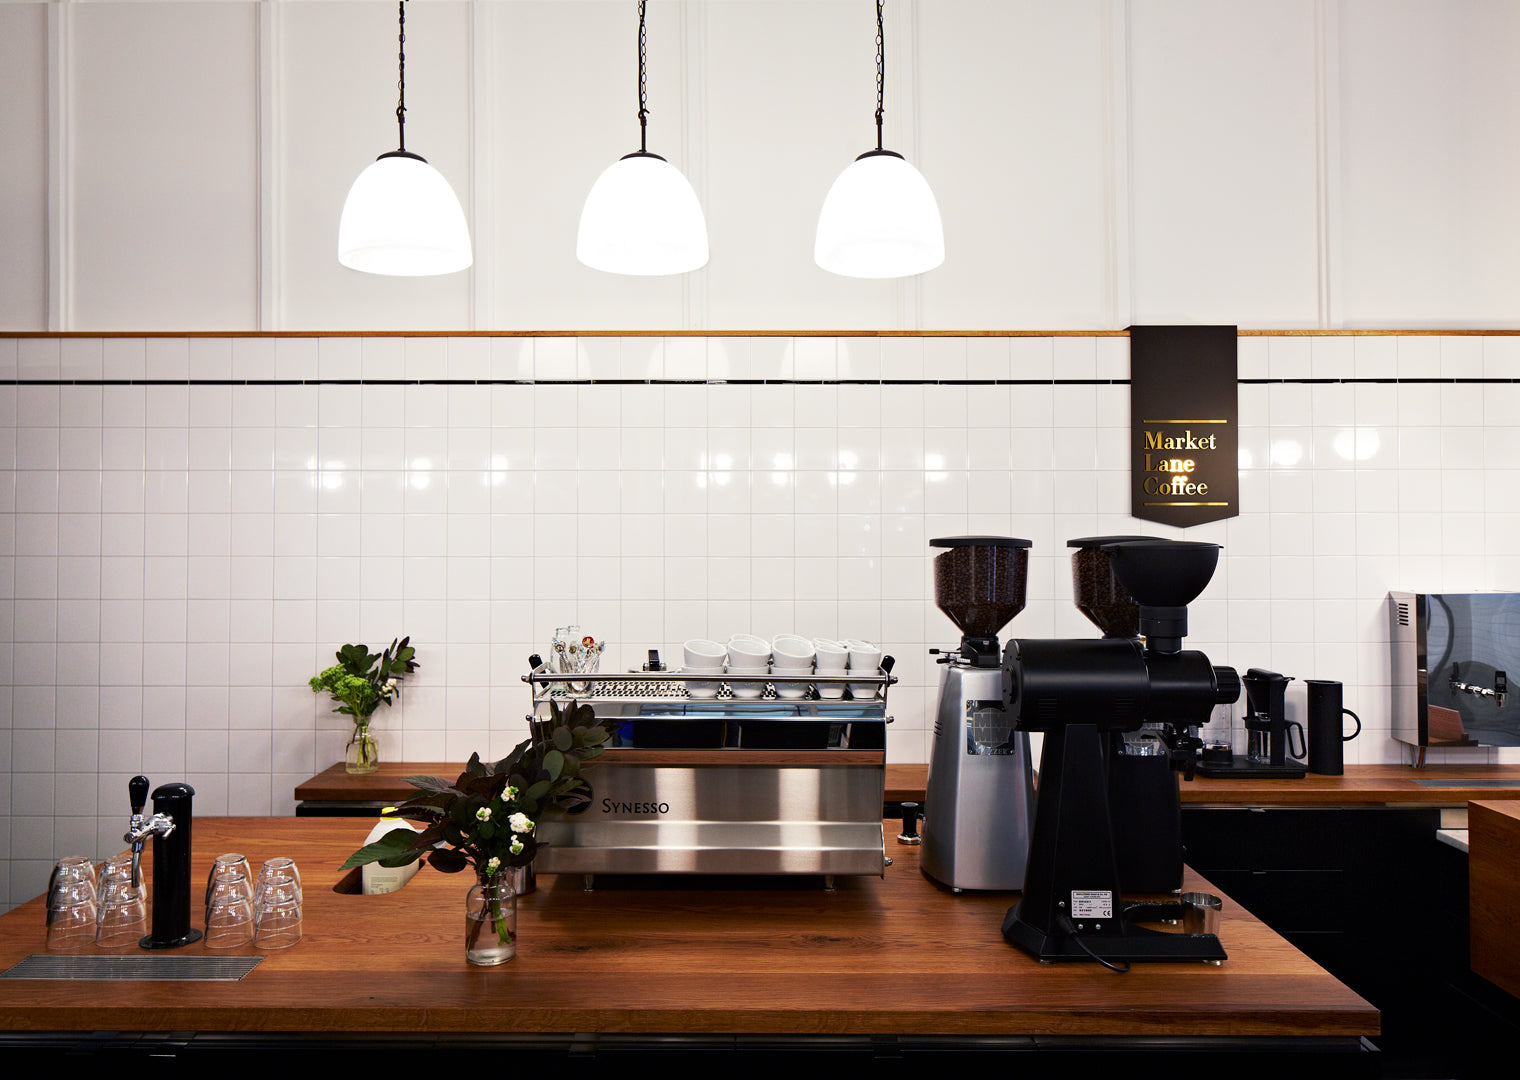 A syneso coffee machine sitting on a timber benchtop at our cafe in the Dairy Hall of Queen Victoria Market.